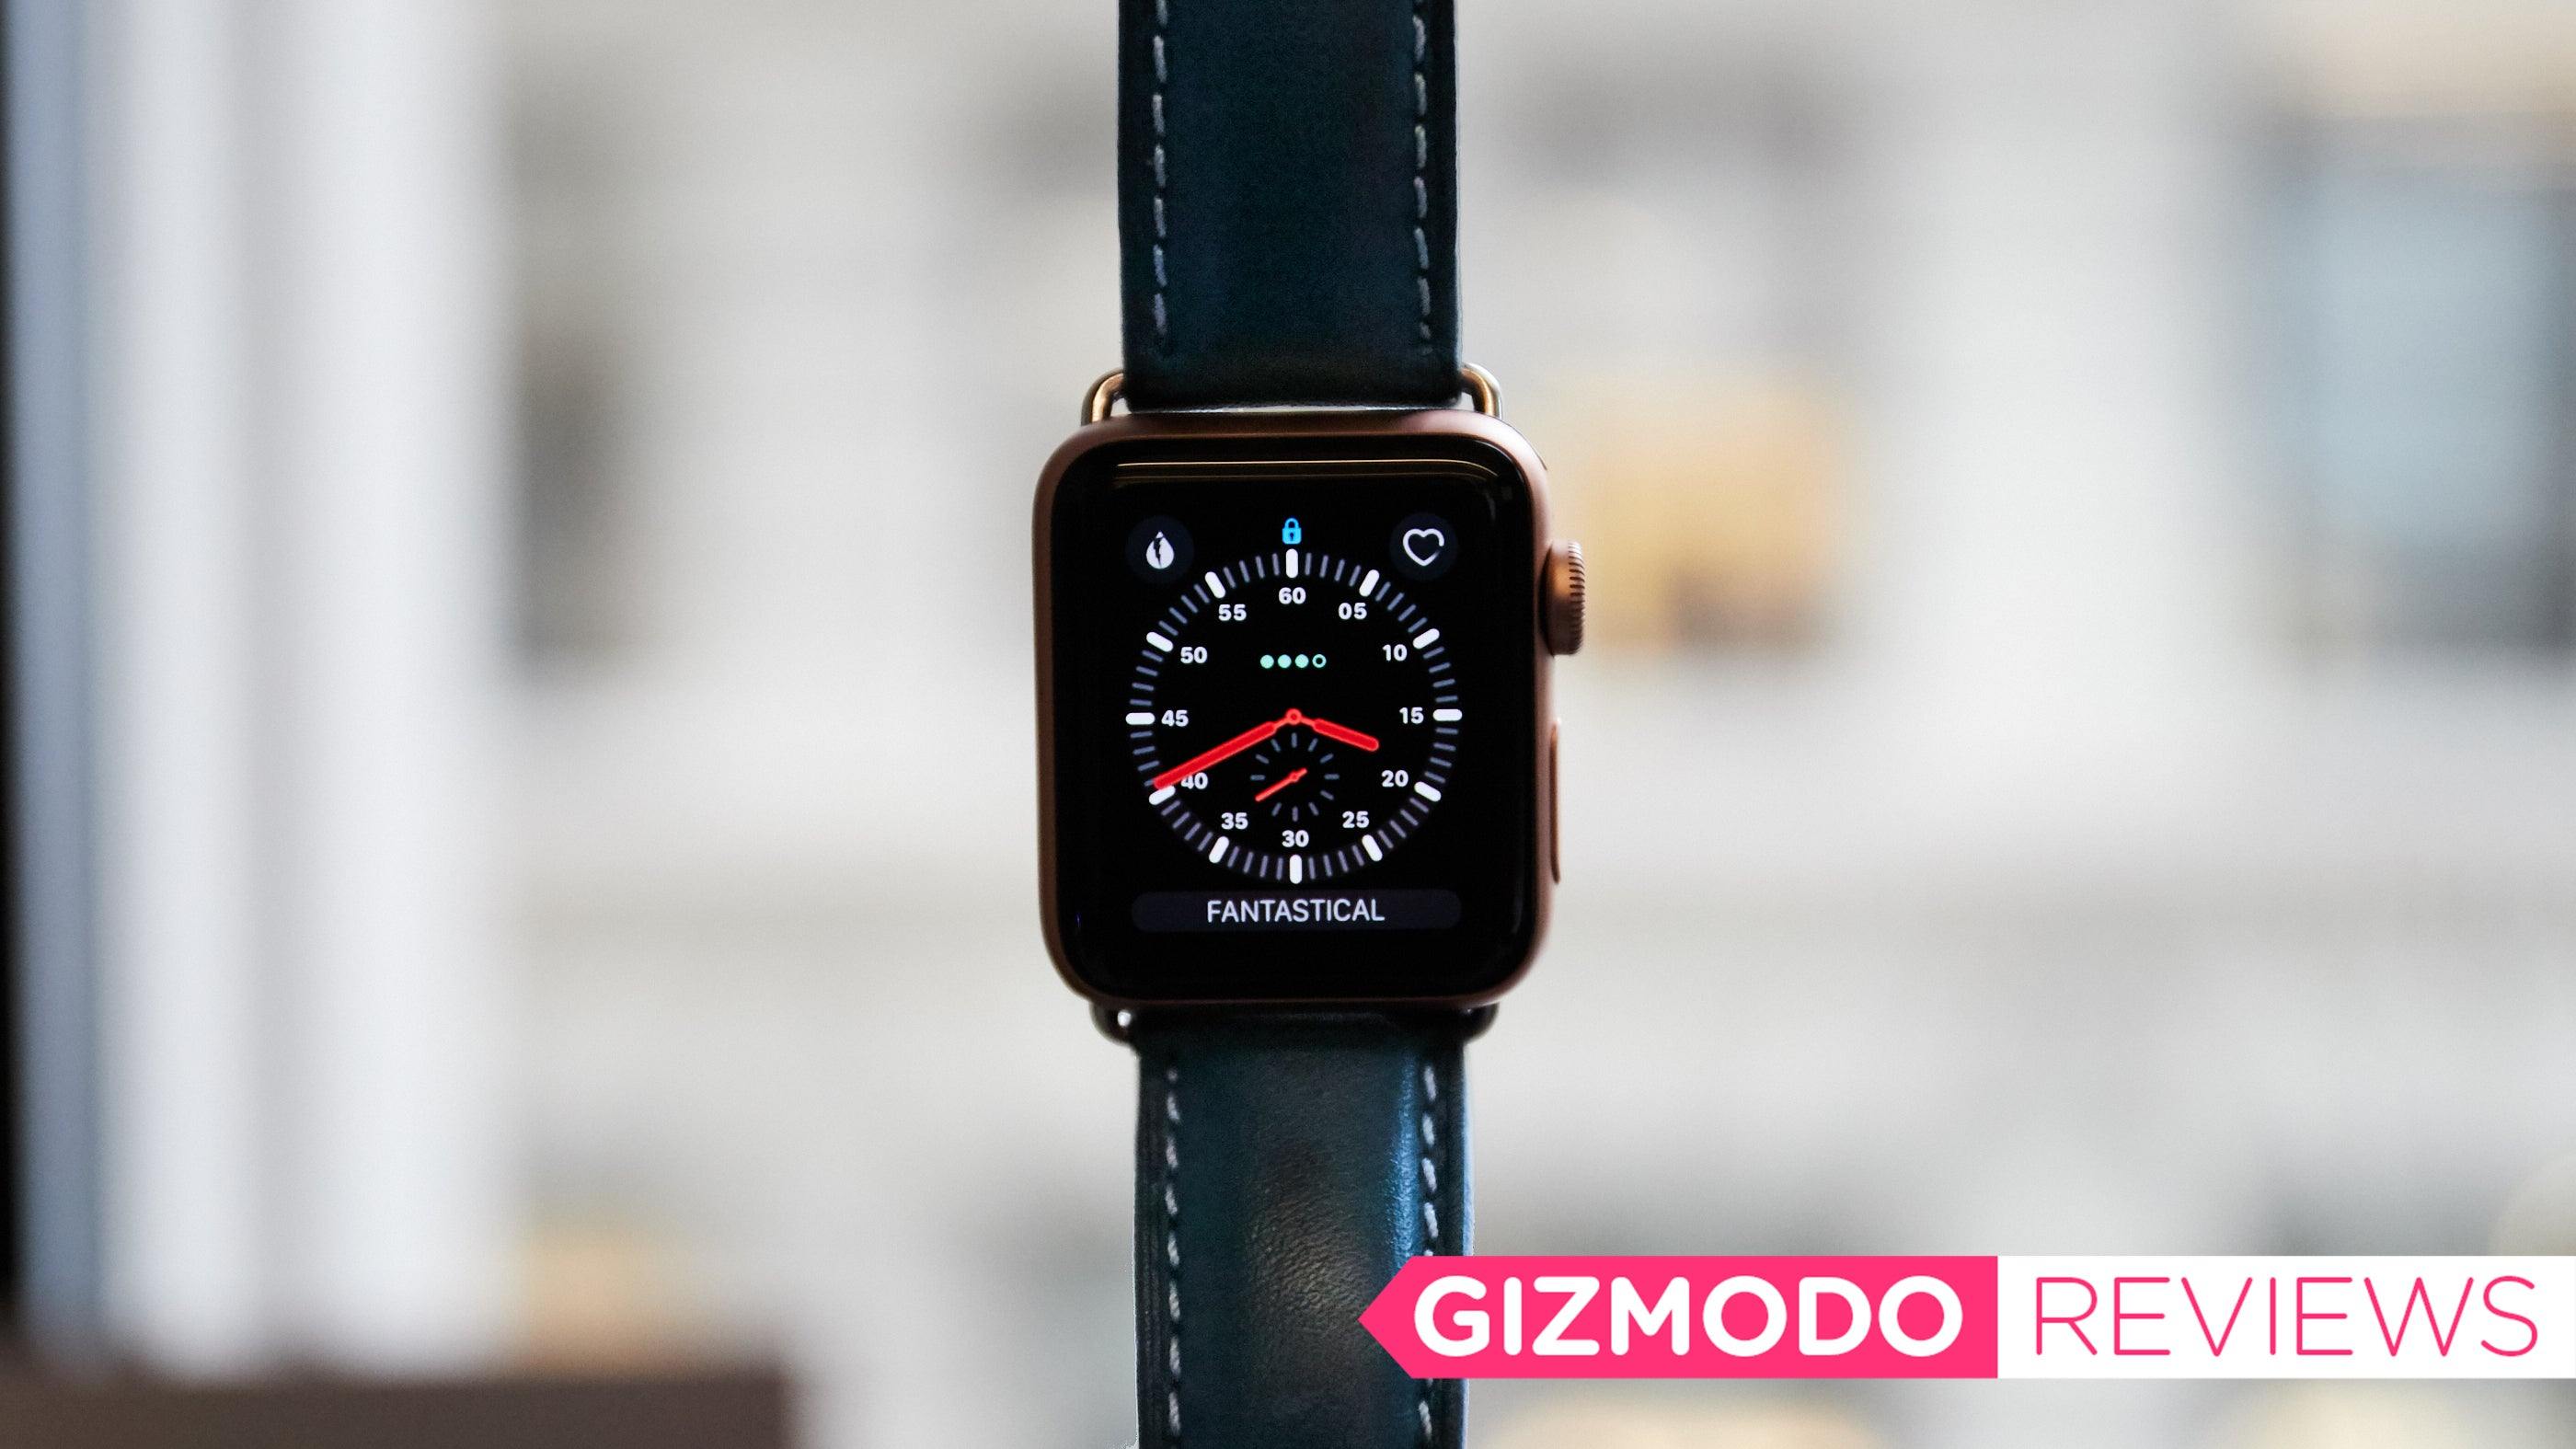 cellular app hands watchos cnet watches music on adds watch streaming radio news update apple and